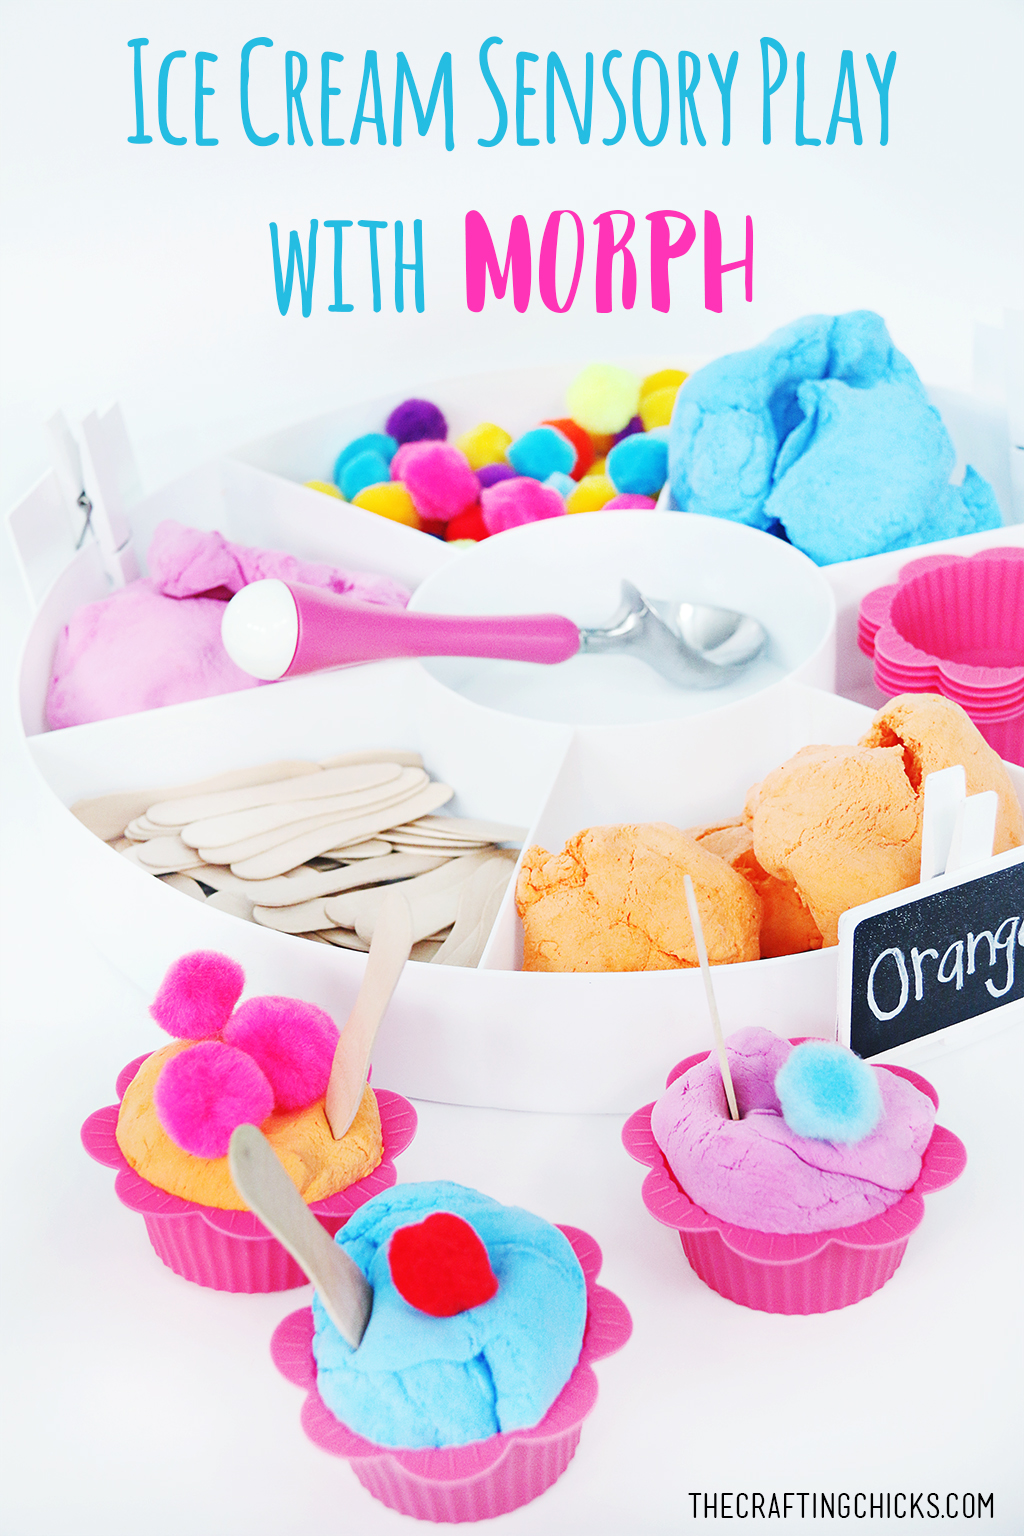 Ice Cream Sensory Play with Morph - A fun and SWEET way to encourage hands-on sensory and creative play!